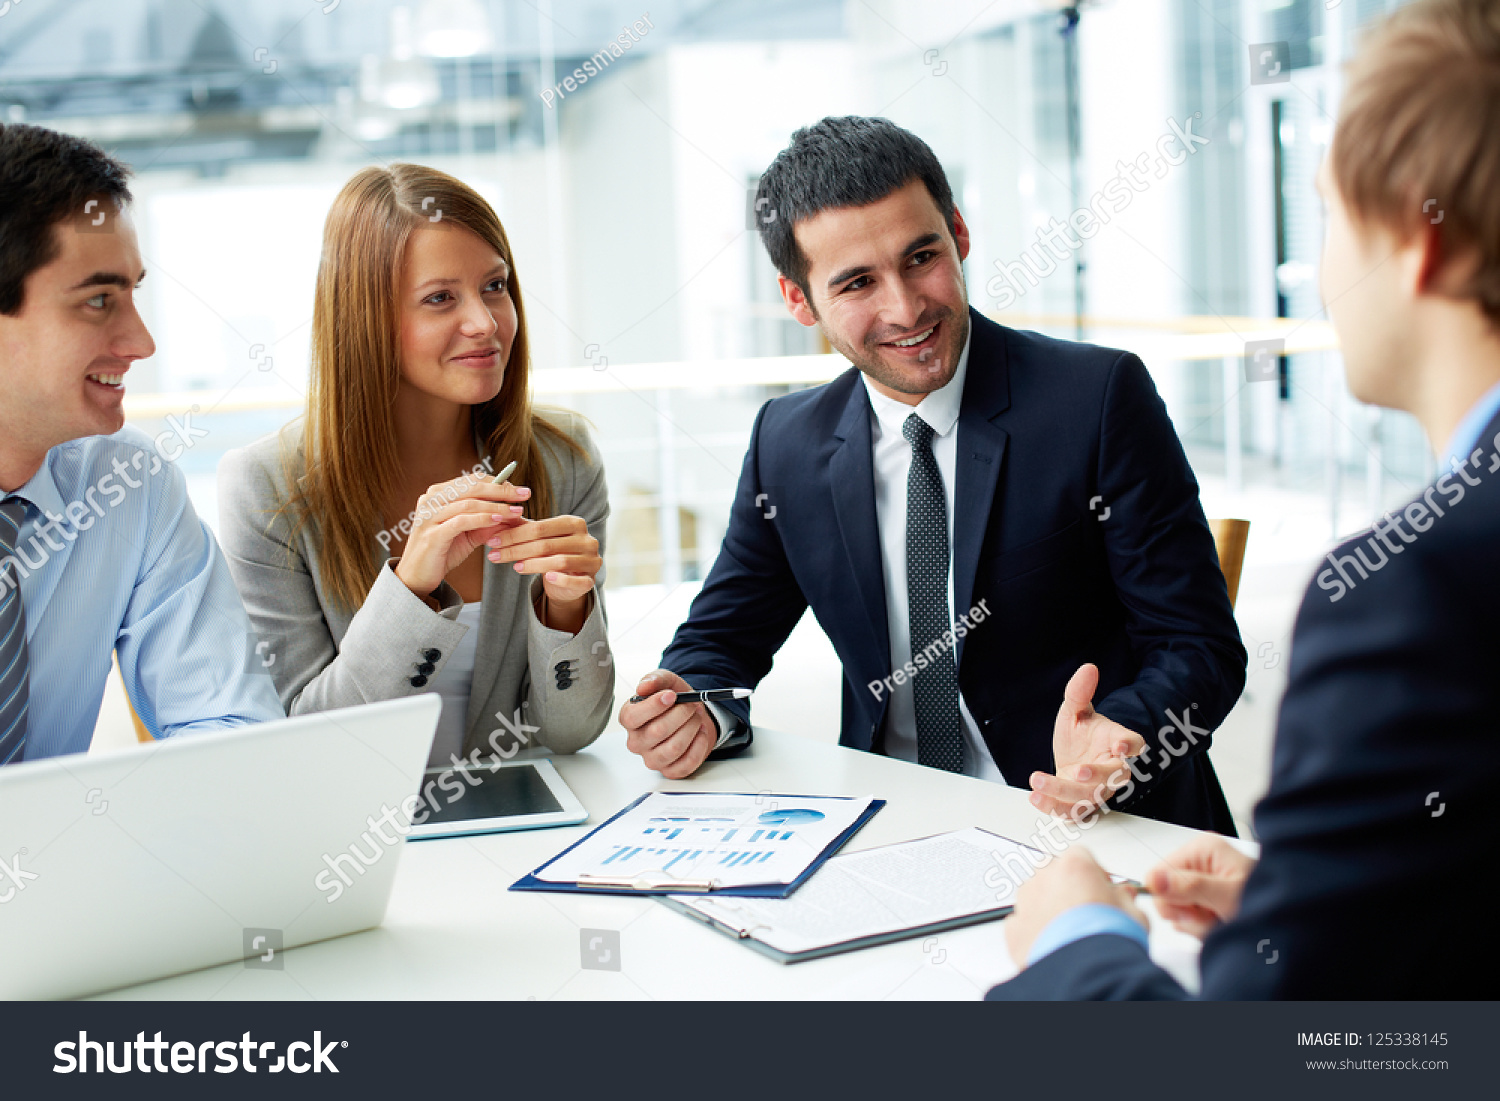 Image Business Partners Discussing Documents And Ideas #0: stock photo image of business partners discussing documents and ideas at meeting